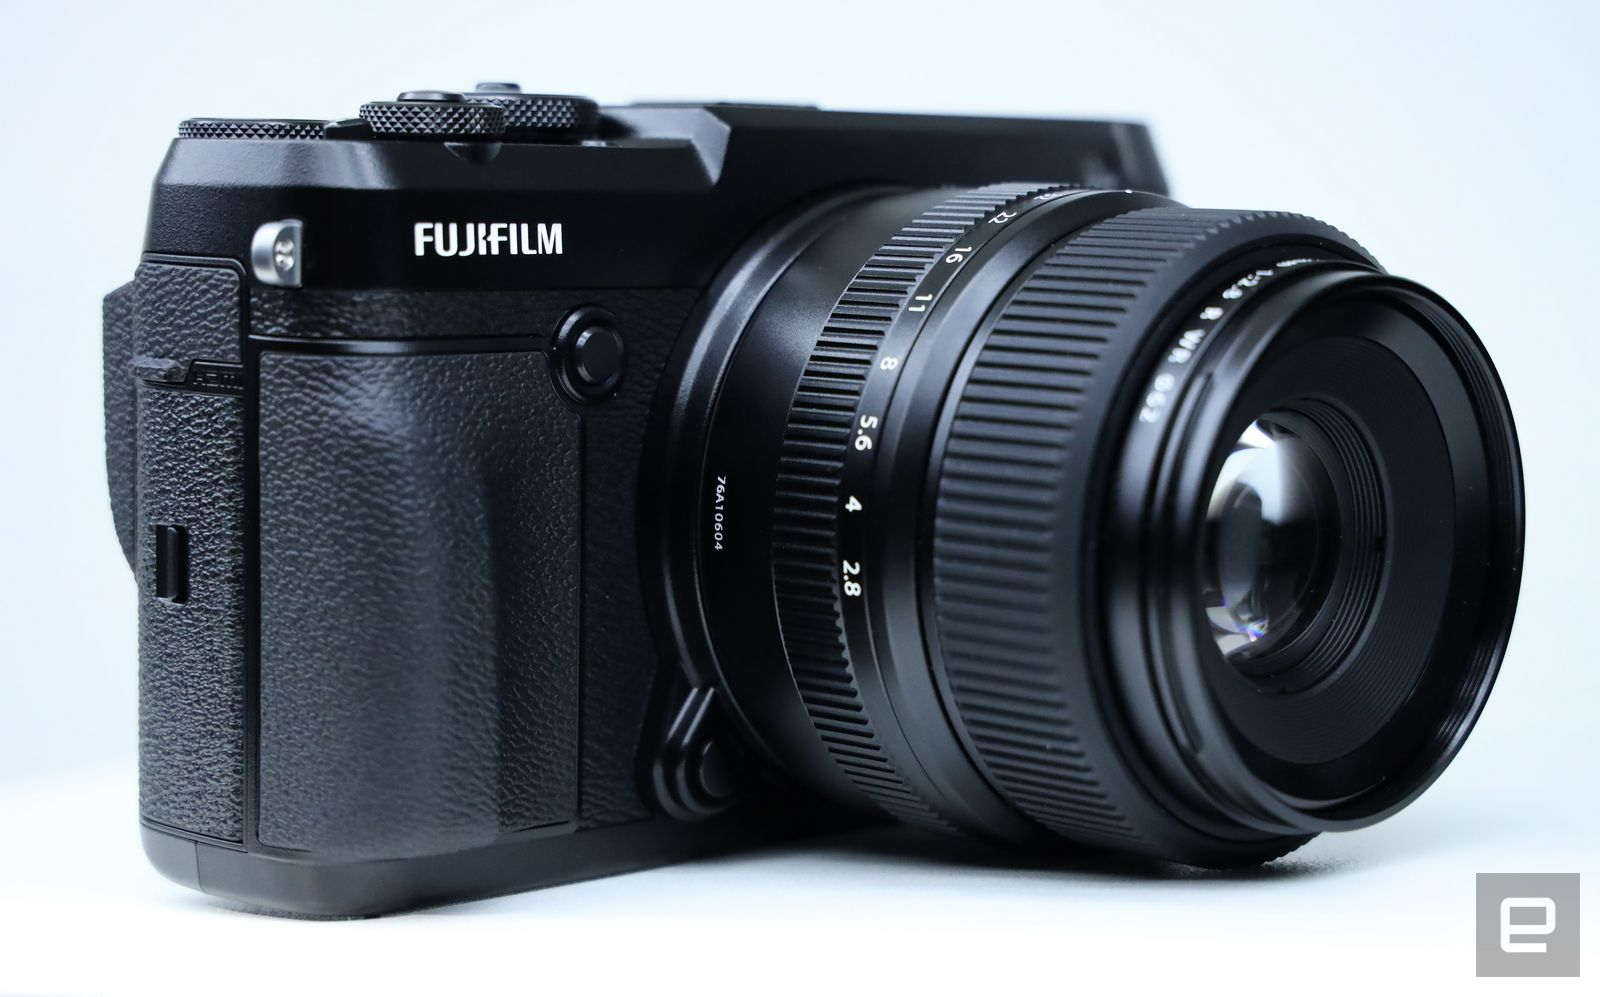 Fujfilm's app turns your X series and GFX cameras into webcams